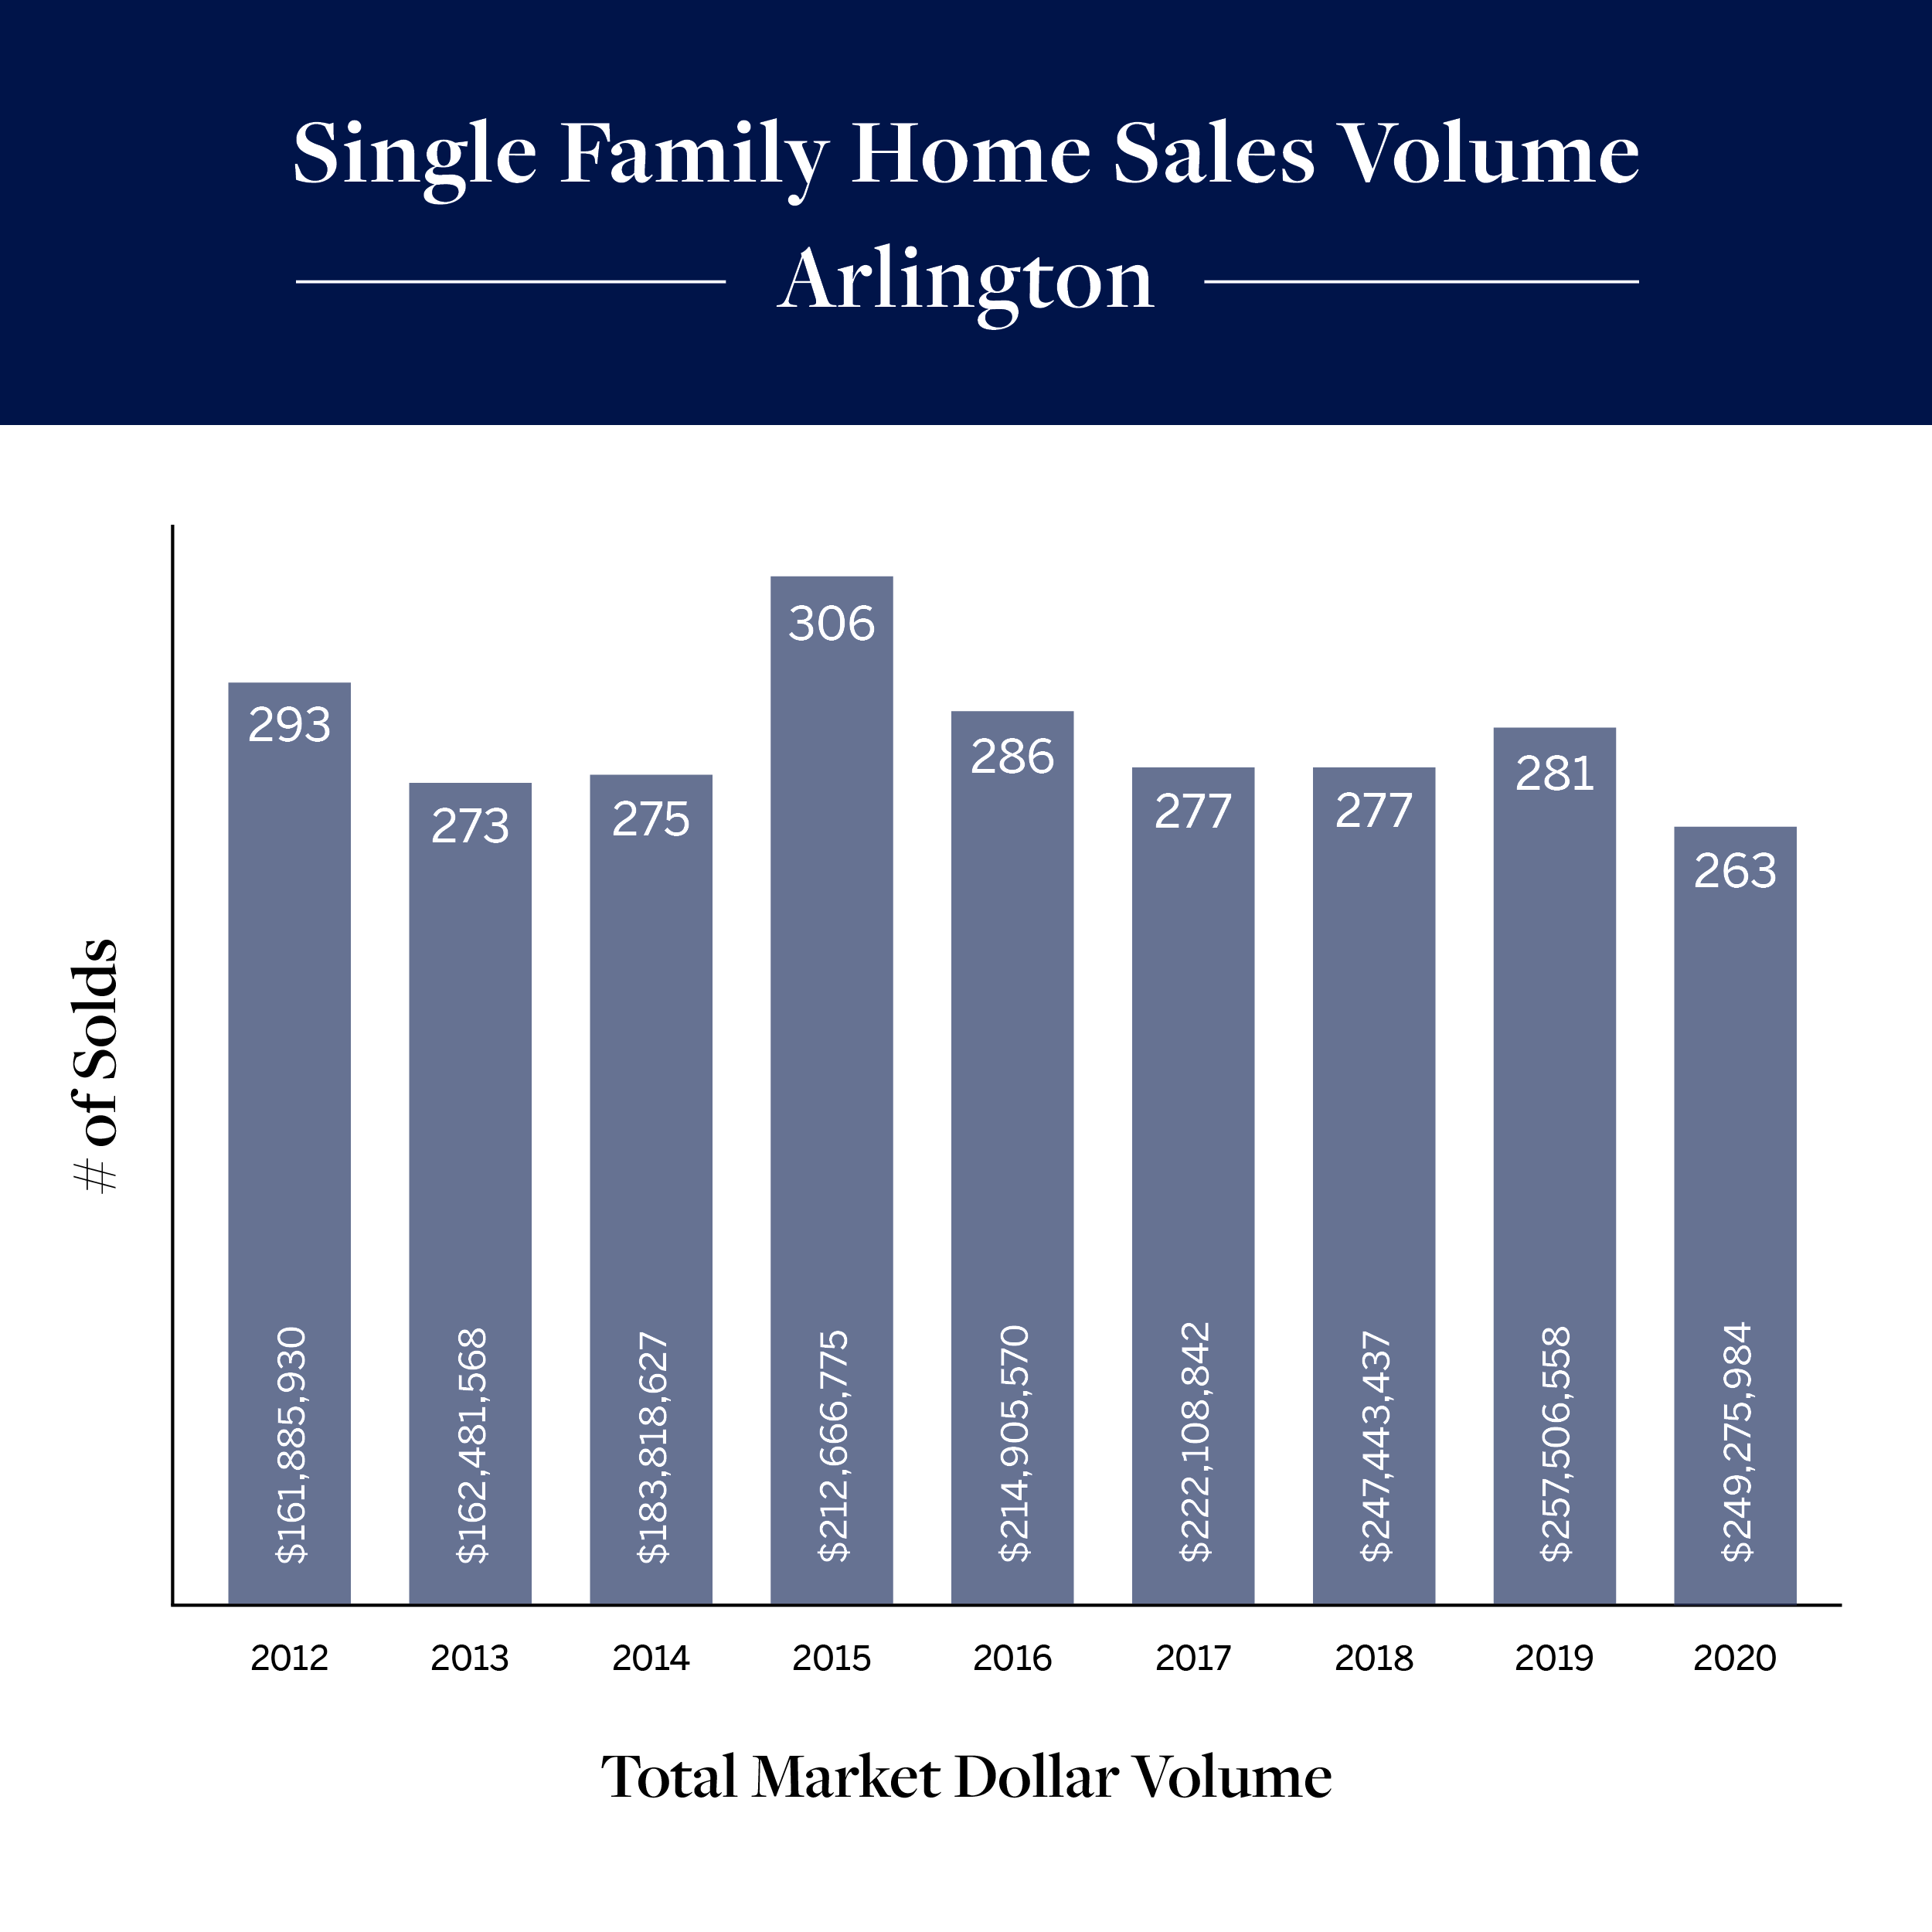 Single Family Home Sales Volume